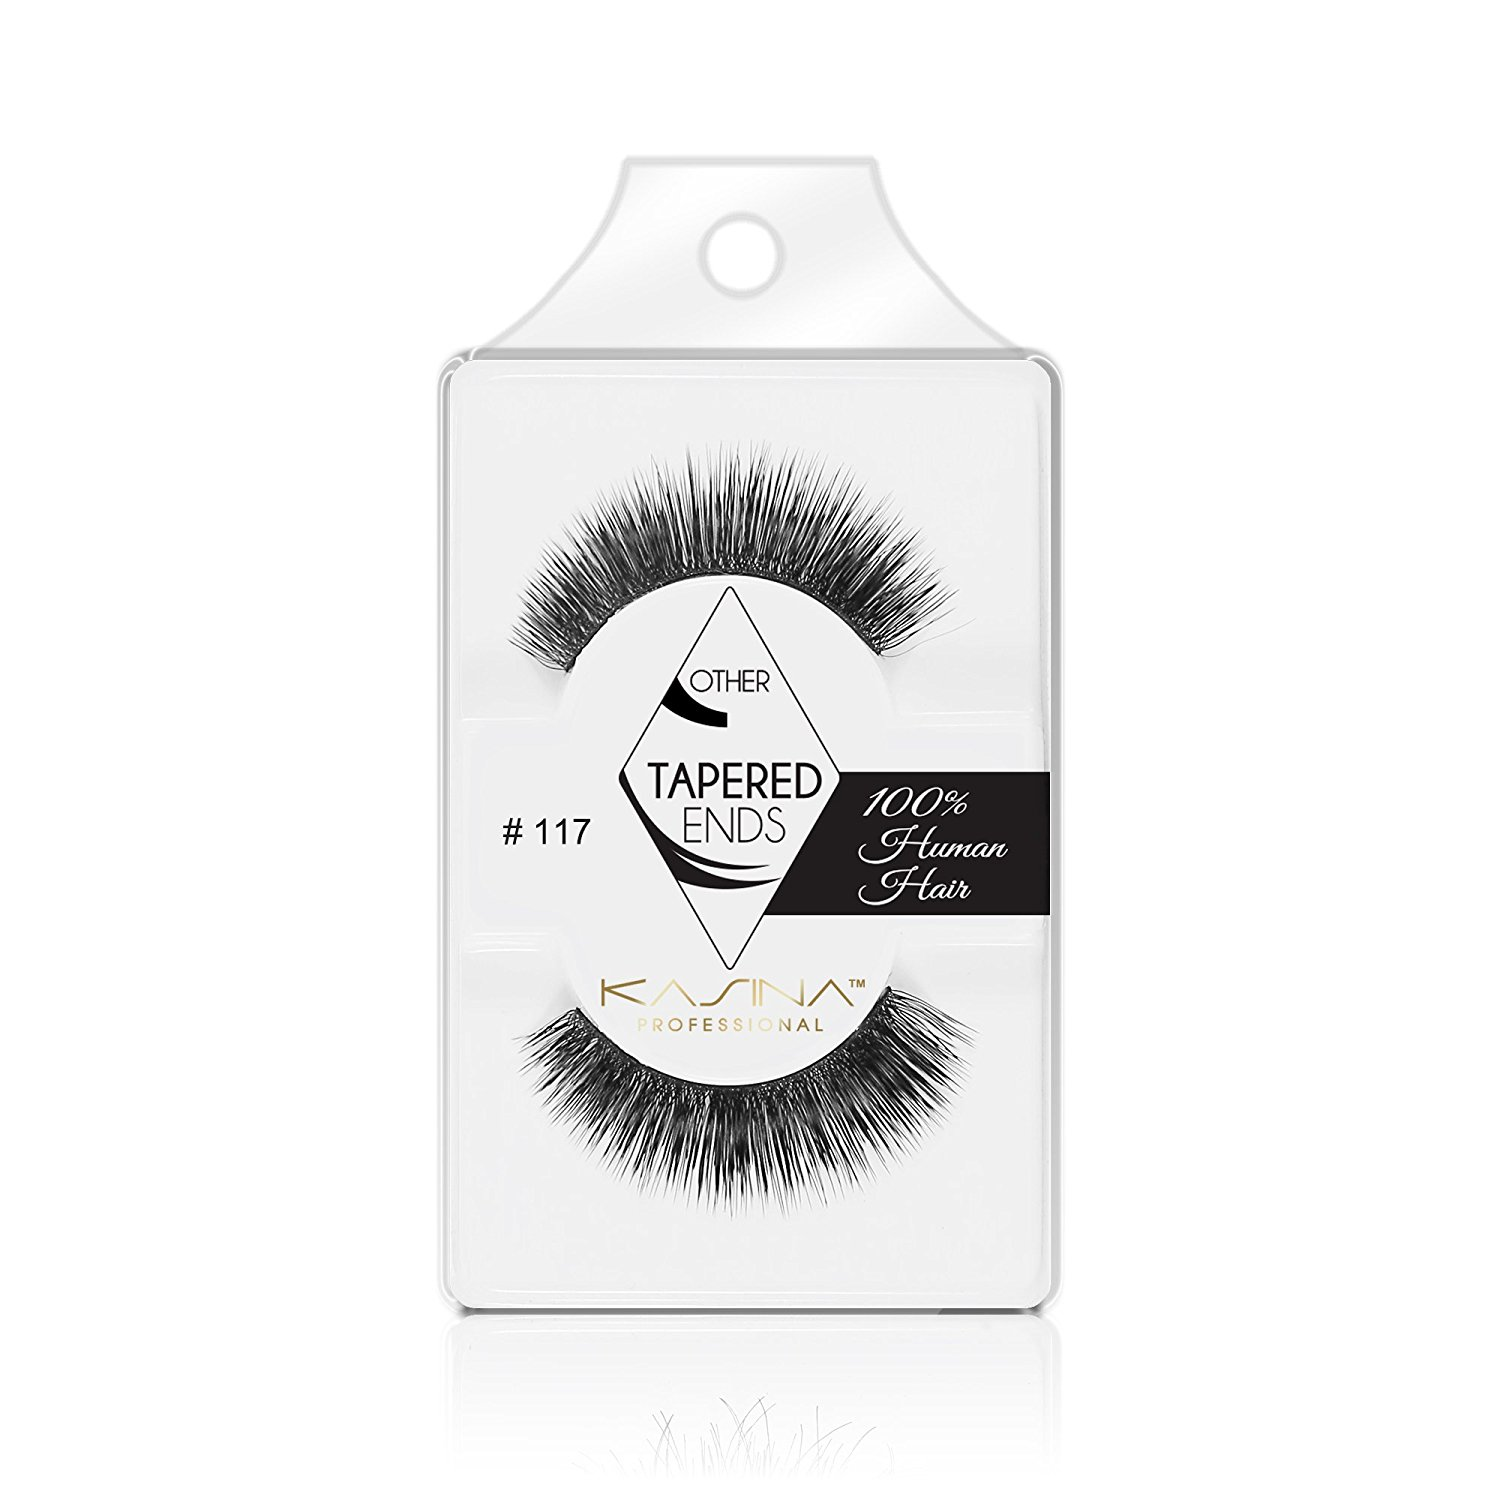 0a4c0819ddc Get Quotations · Blinque False Eyelashes 6 Pairs Eyelashes - (Same factory  & production line as Red Cherry